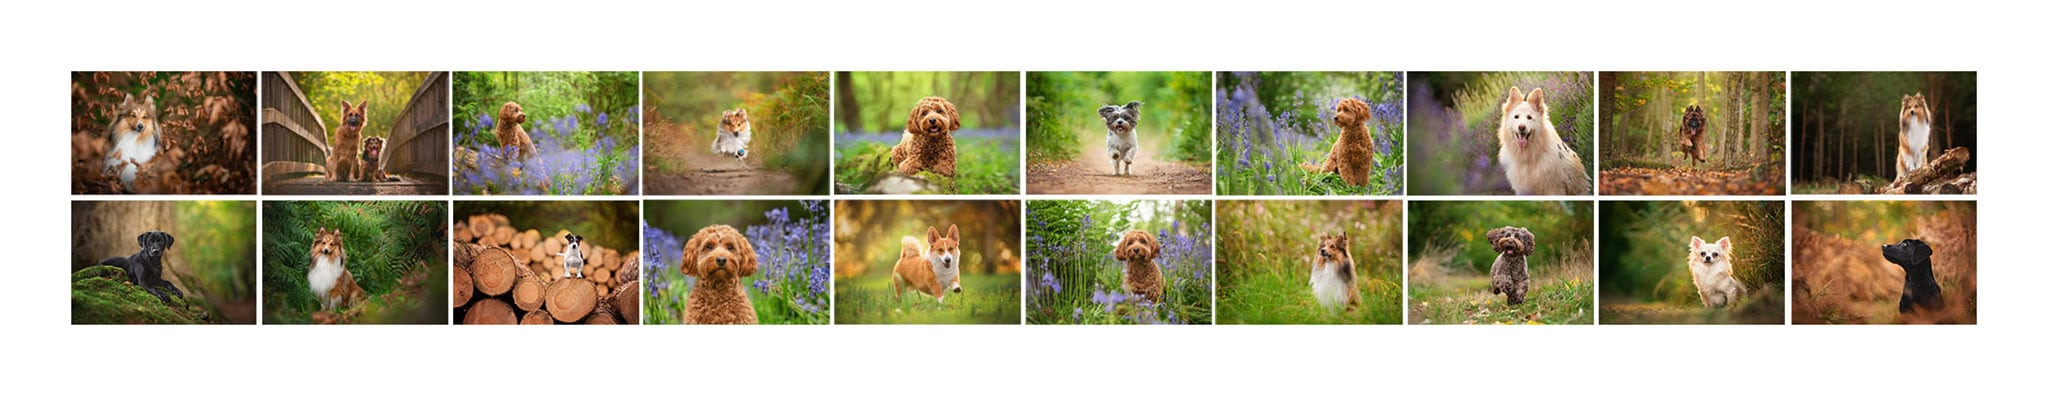 Josie Baughan Dog Photographer MPA Qualification Panel